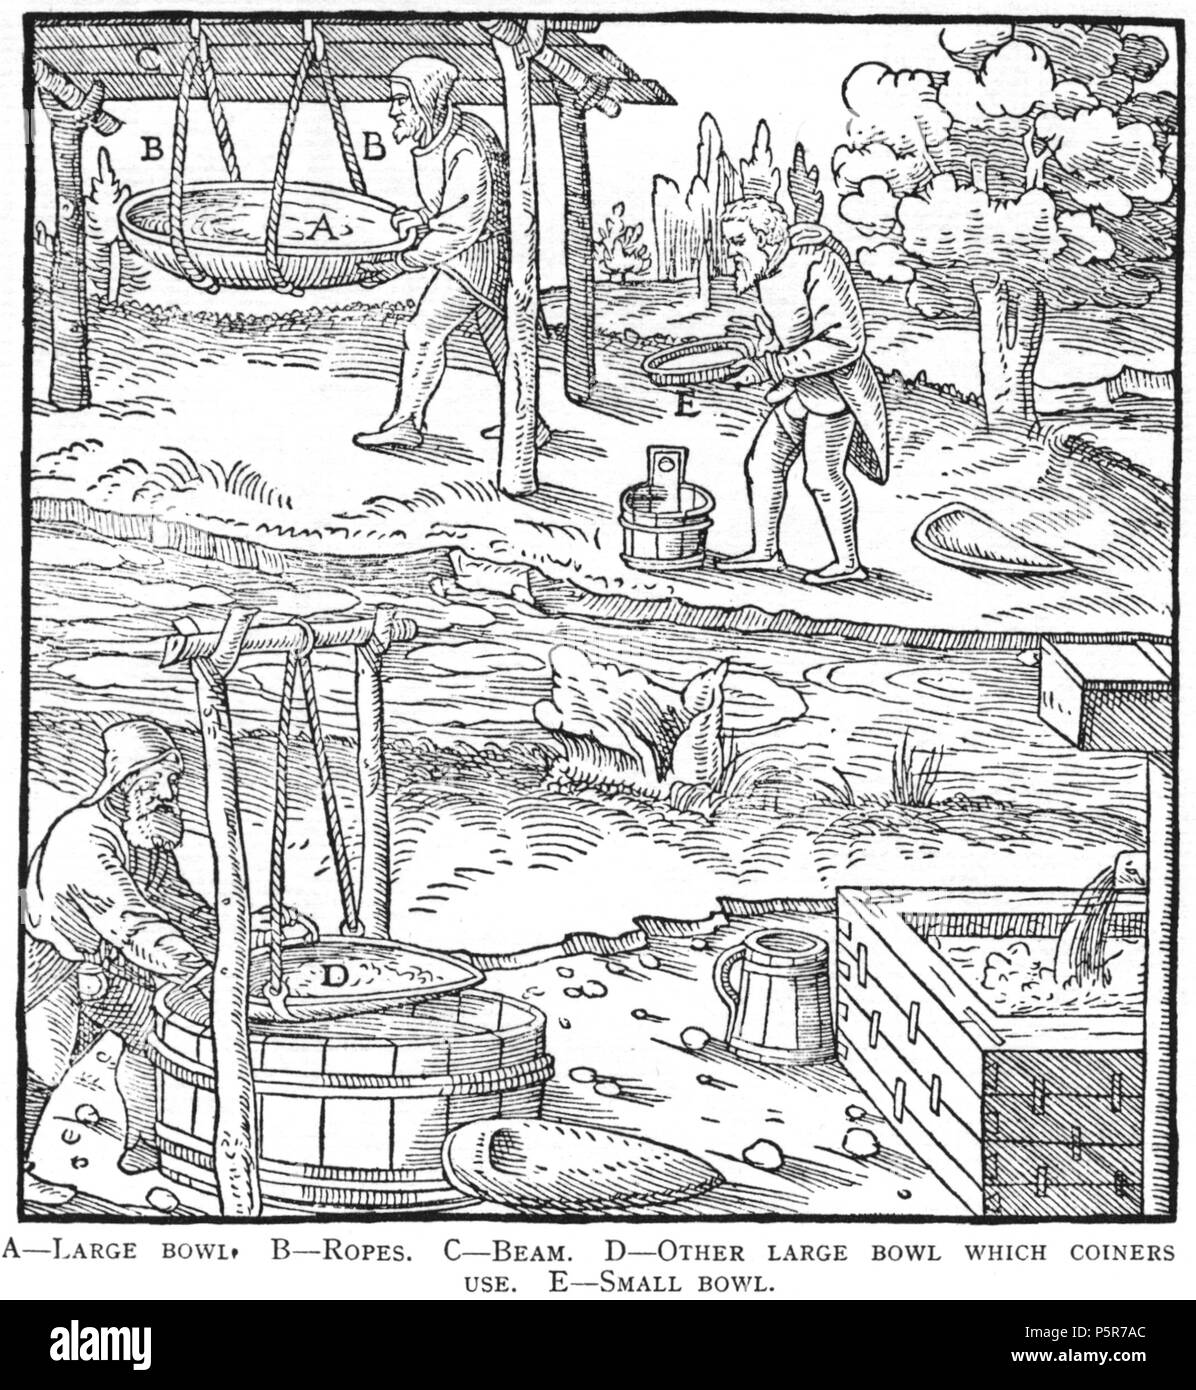 N/A. Woodcut illustration from De re metallica by Georgius Agricola. This is a 300dpi scan from the 1950 Dover edition of the 1913 Hoover translation of the 1556 reference. The Dover edition has slightly smaller size prints than the Hoover (which is a rare book). The woodcuts were recreated for the 1913 printing. Filenames (except for the title page) indicate the chapter (2, 3, 5, etc.) followed by the sequential number of the illustration. 2 May 2005, 07:13:26. TCO (talk) 223 Book8-52 - Stock Image